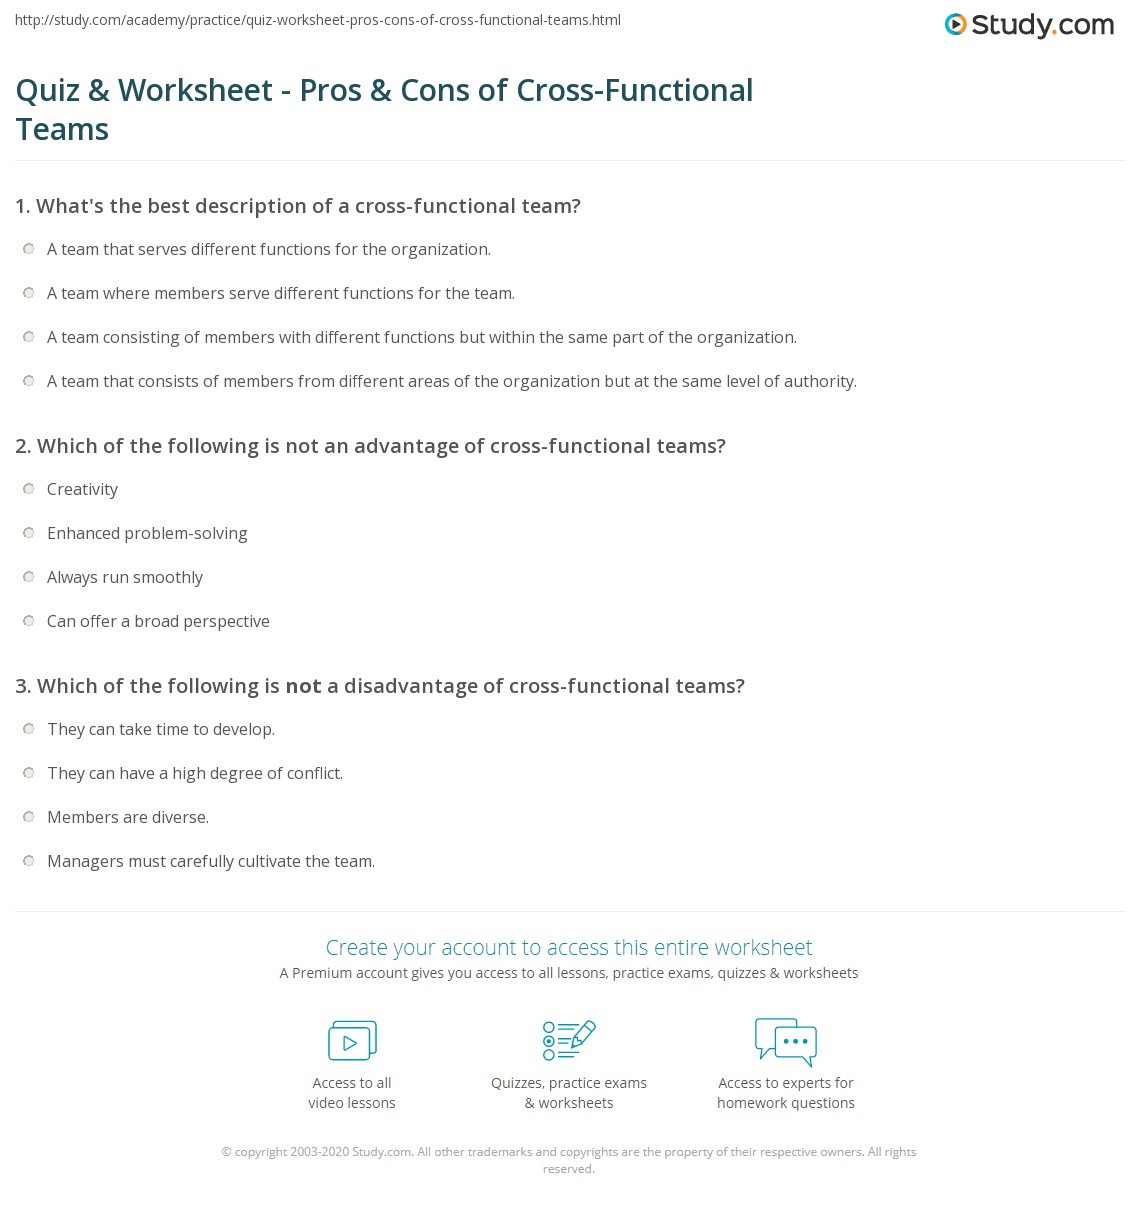 quiz worksheet pros cons of cross functional teams study com print cross functional teams definition advantages disadvantages worksheet